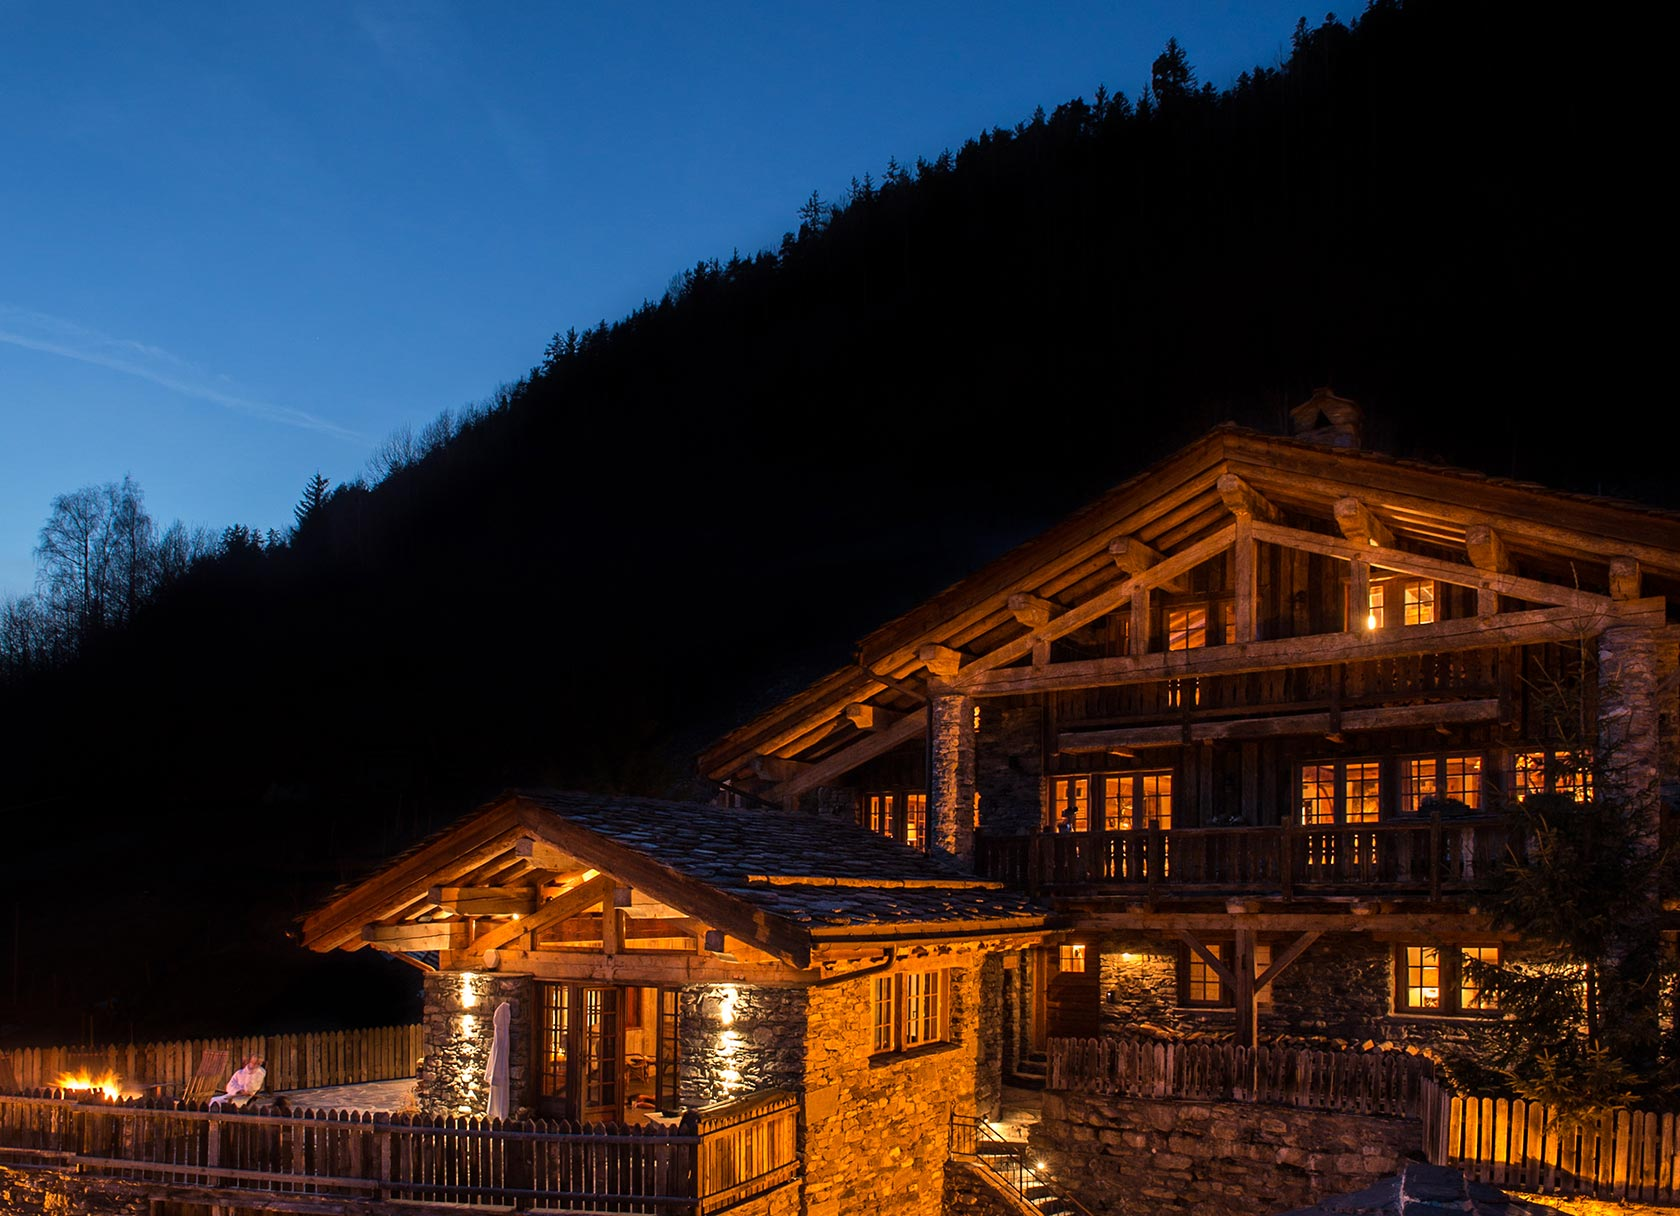 The Farmhouse Val D Isere Catered Ski Chalet In French Alps High End Vacation Val D Isere